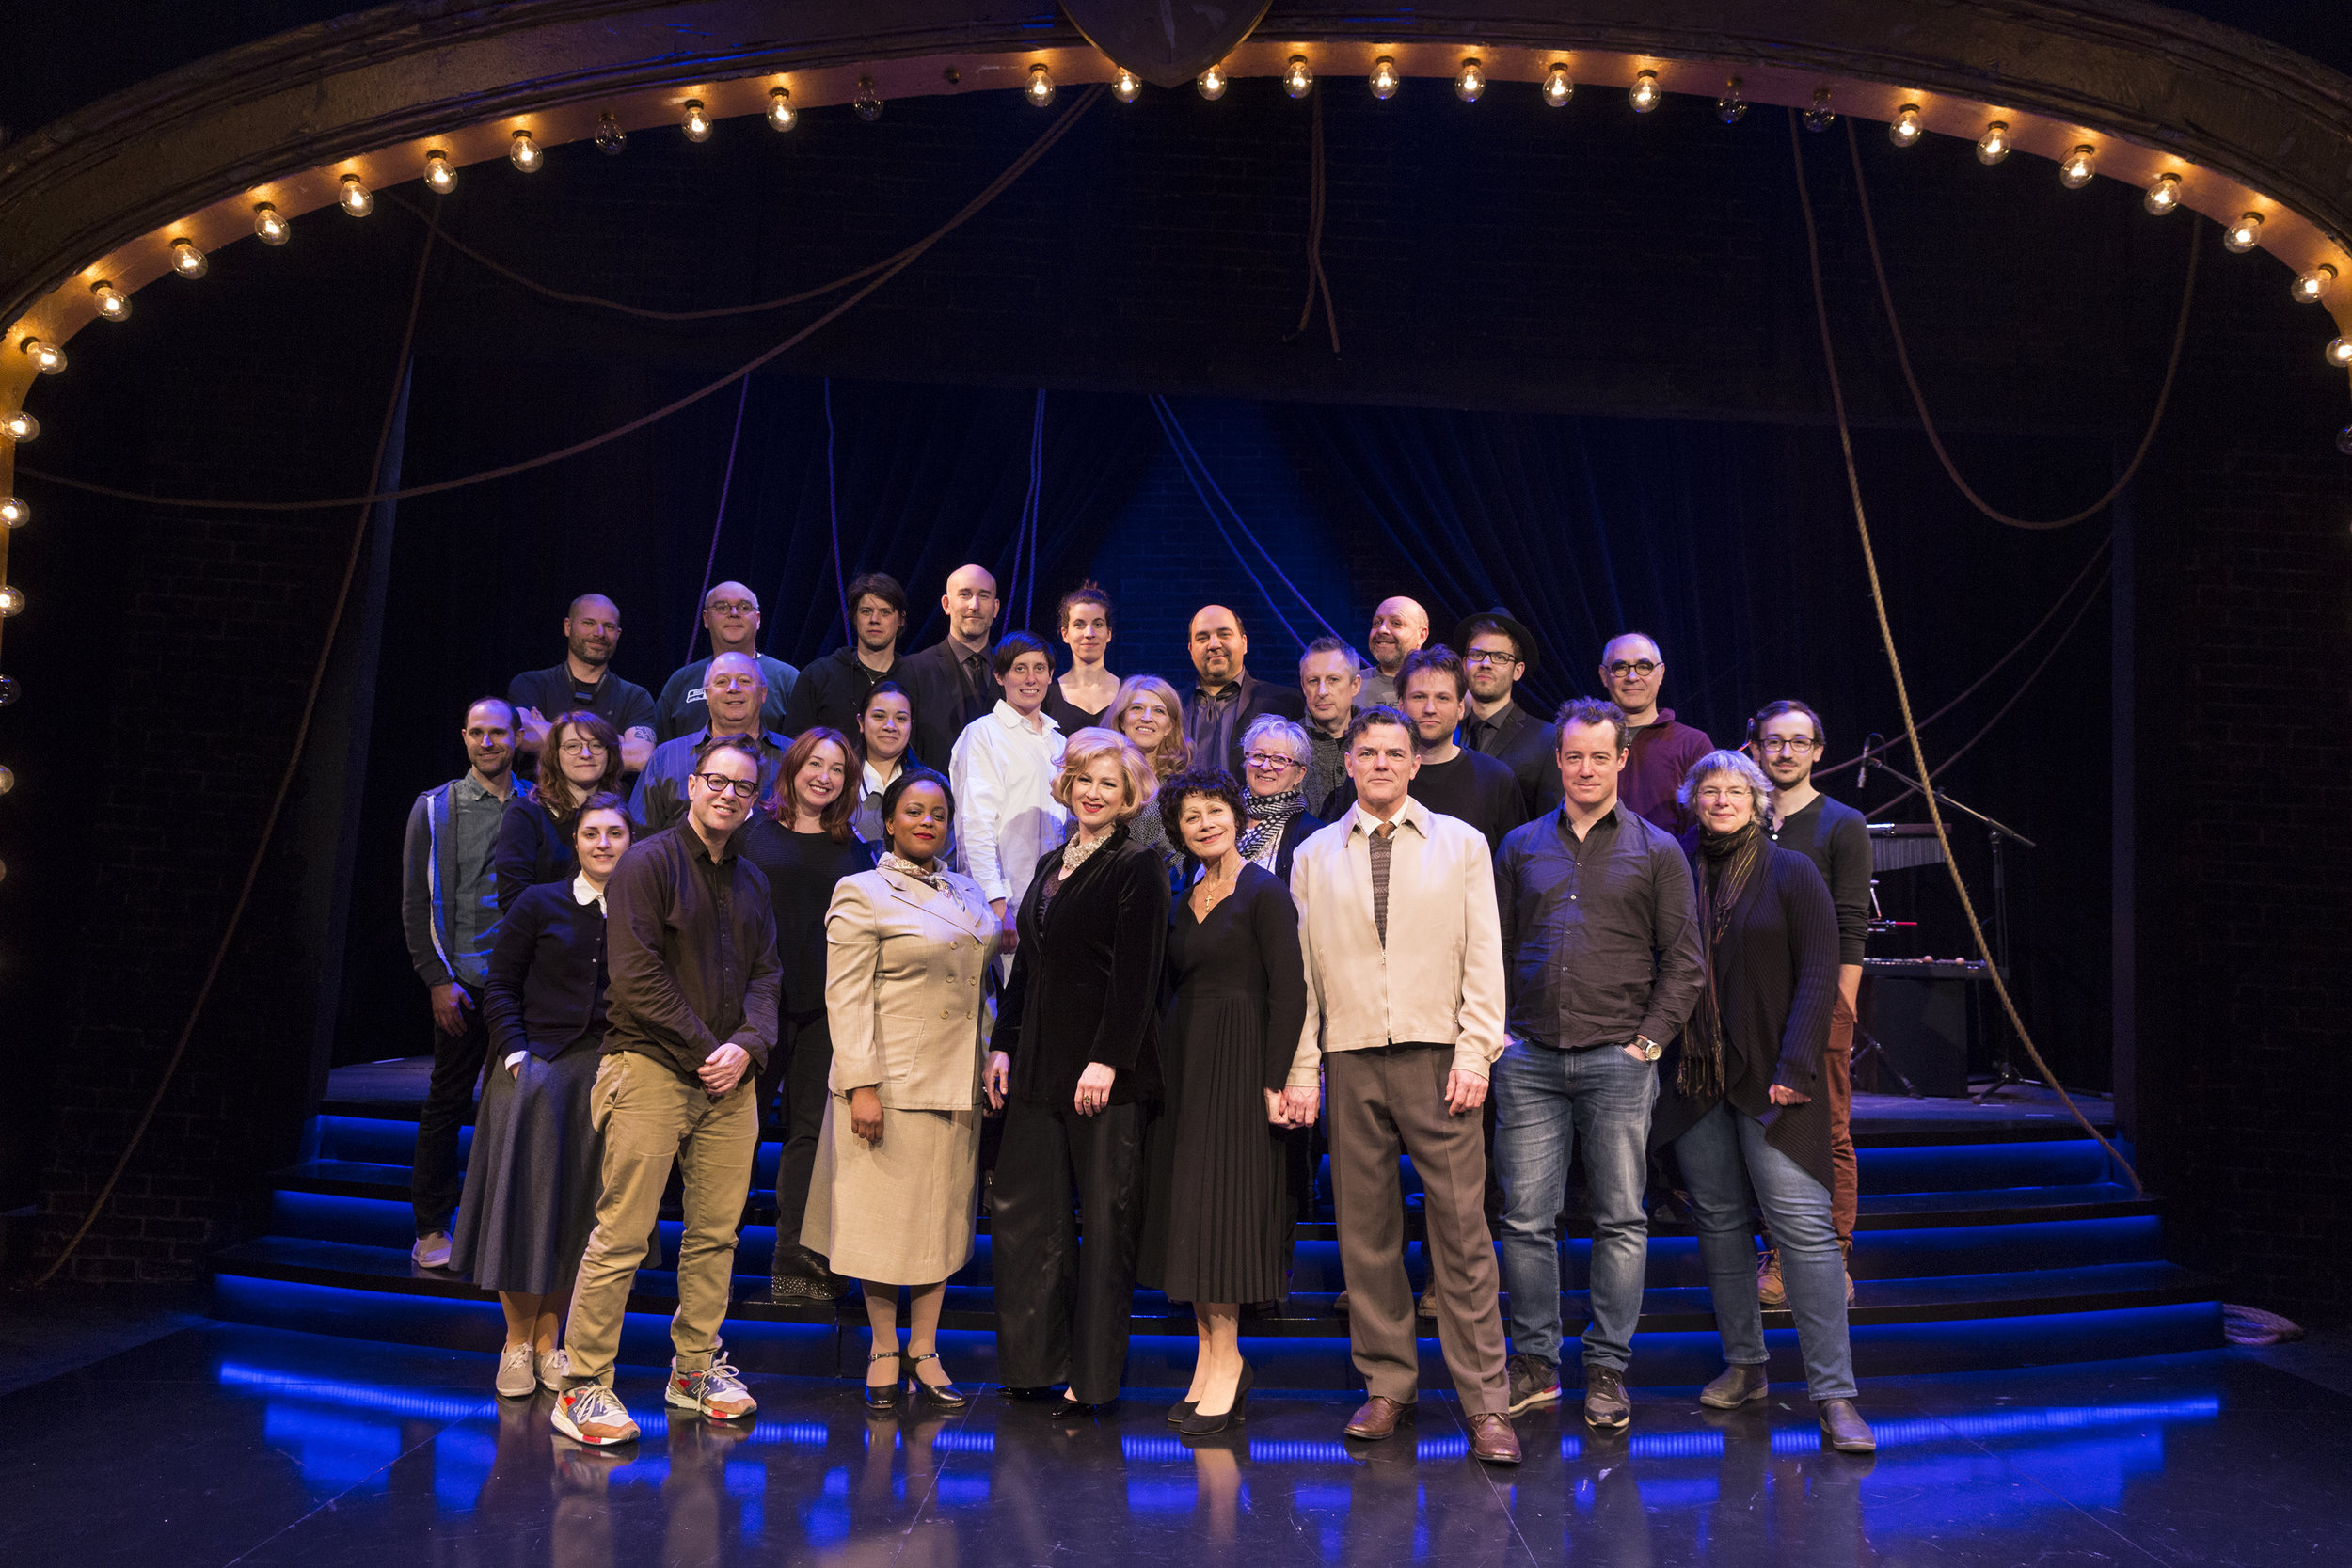 0705_Full Cast_The Angel and the Sparrow 2018_photo by Leslie Schachter.jpg